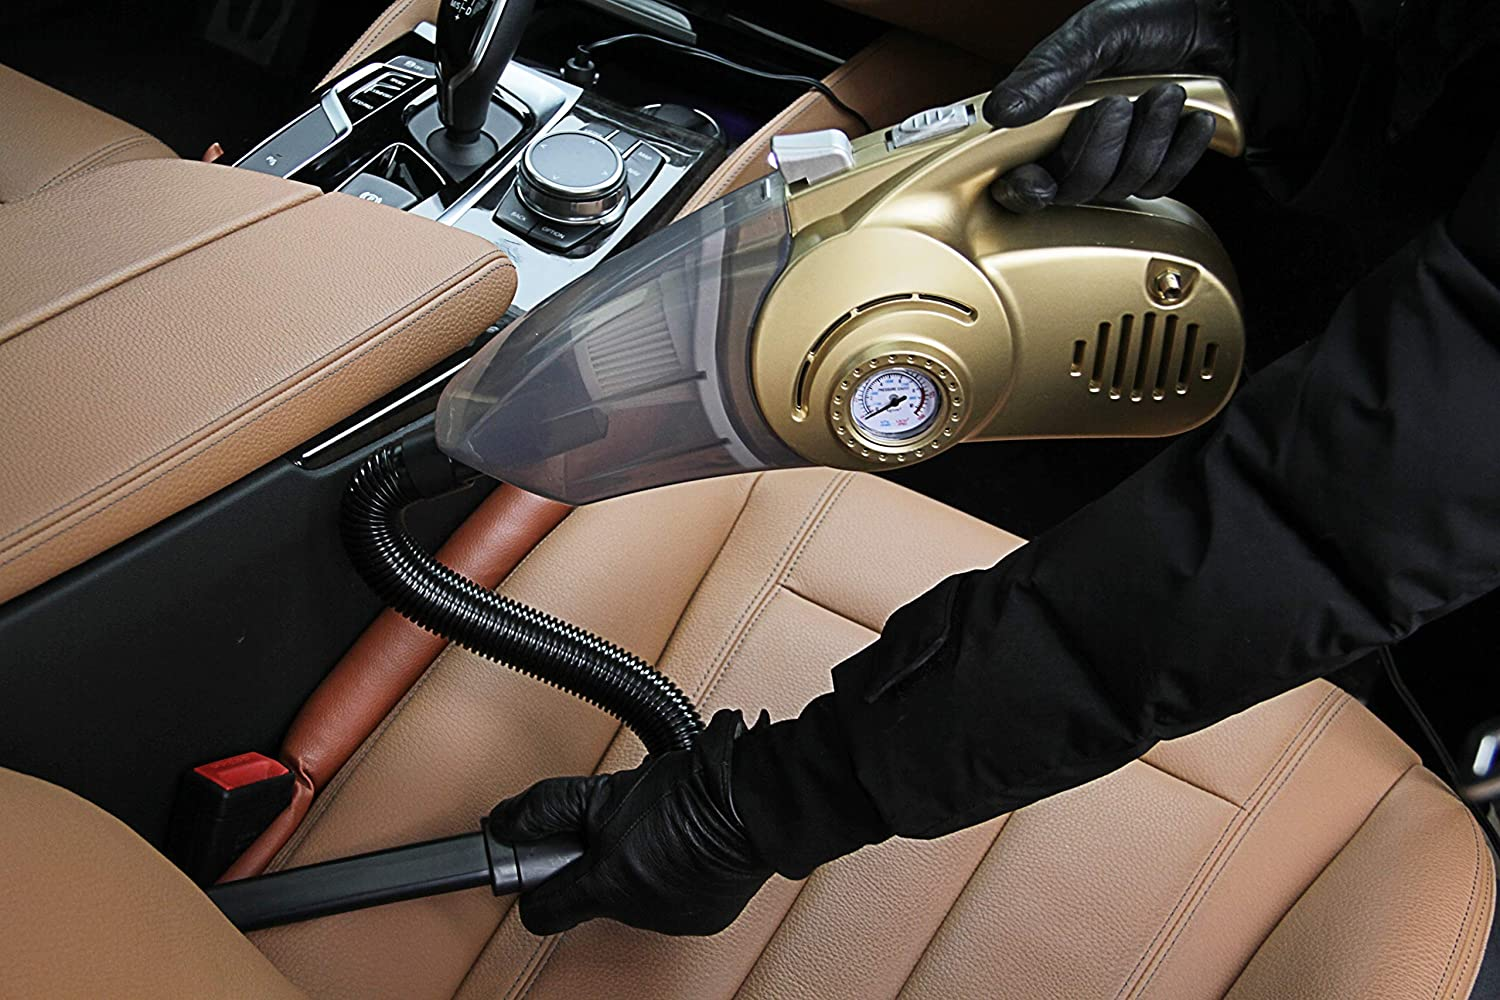 HUAHE Handheld High Power Car Vacuum Cleaner Wet /& Dry for Car Interior Cleaning